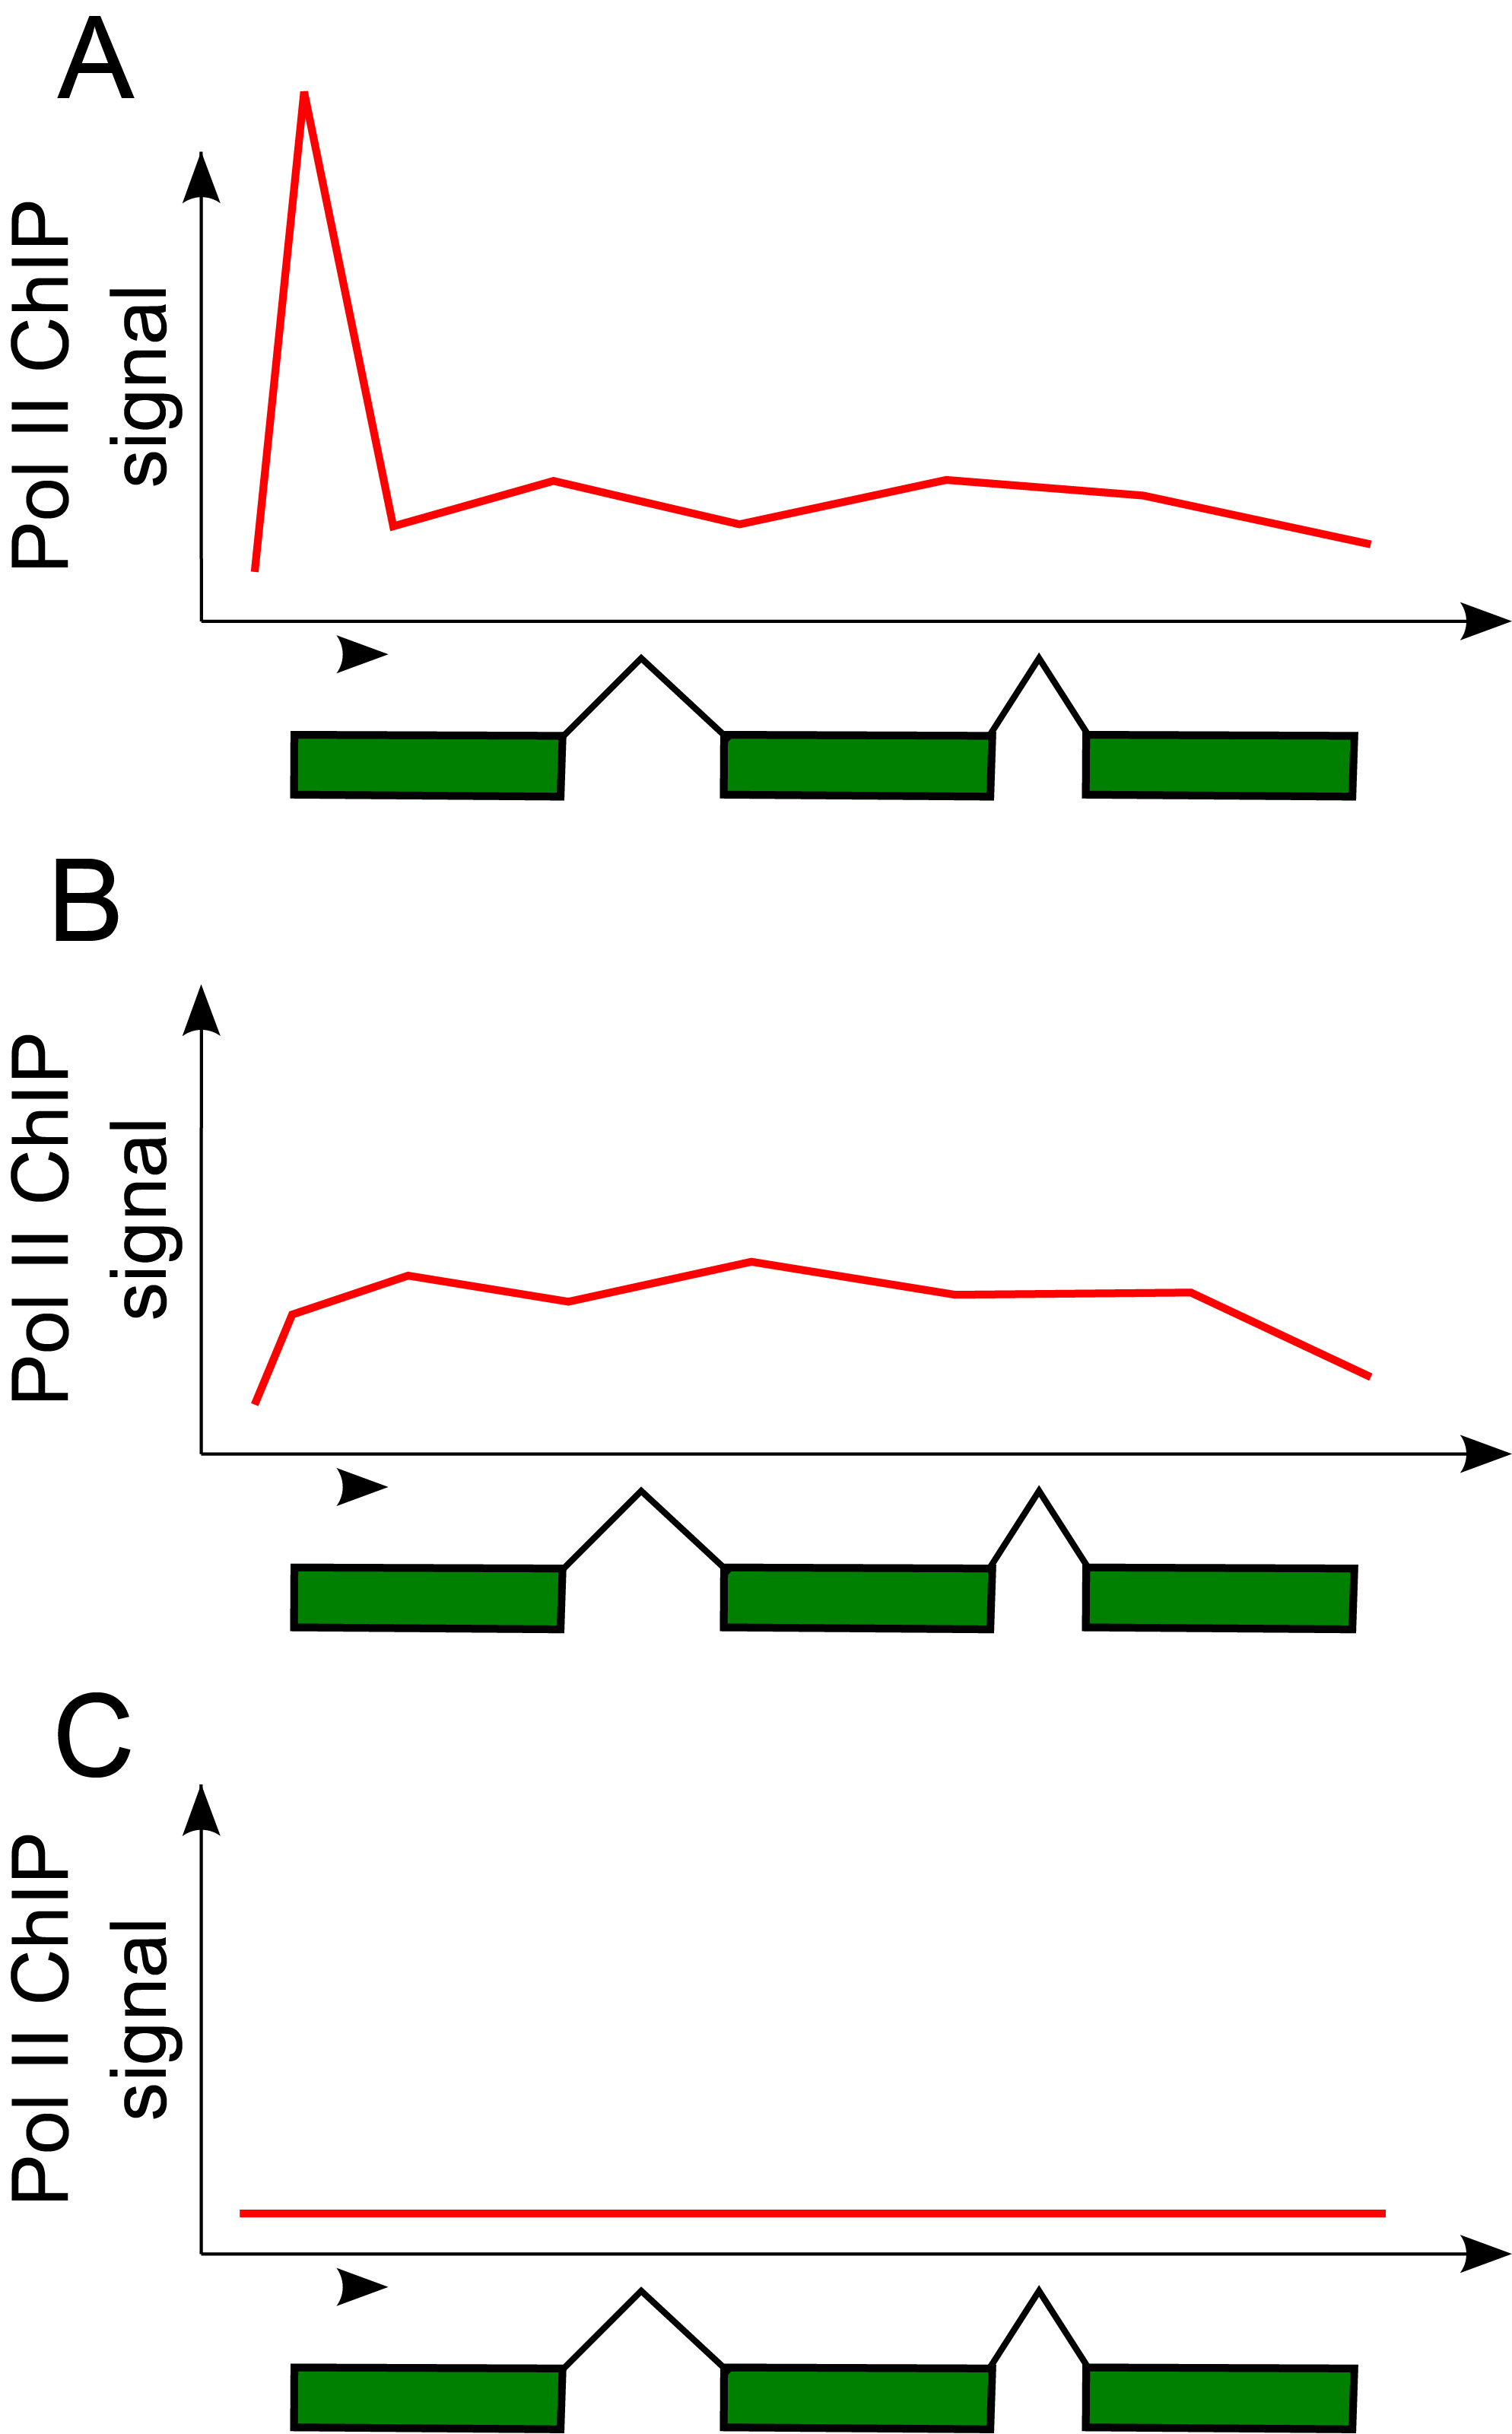 Different Pol II ChIP signals over different genes.